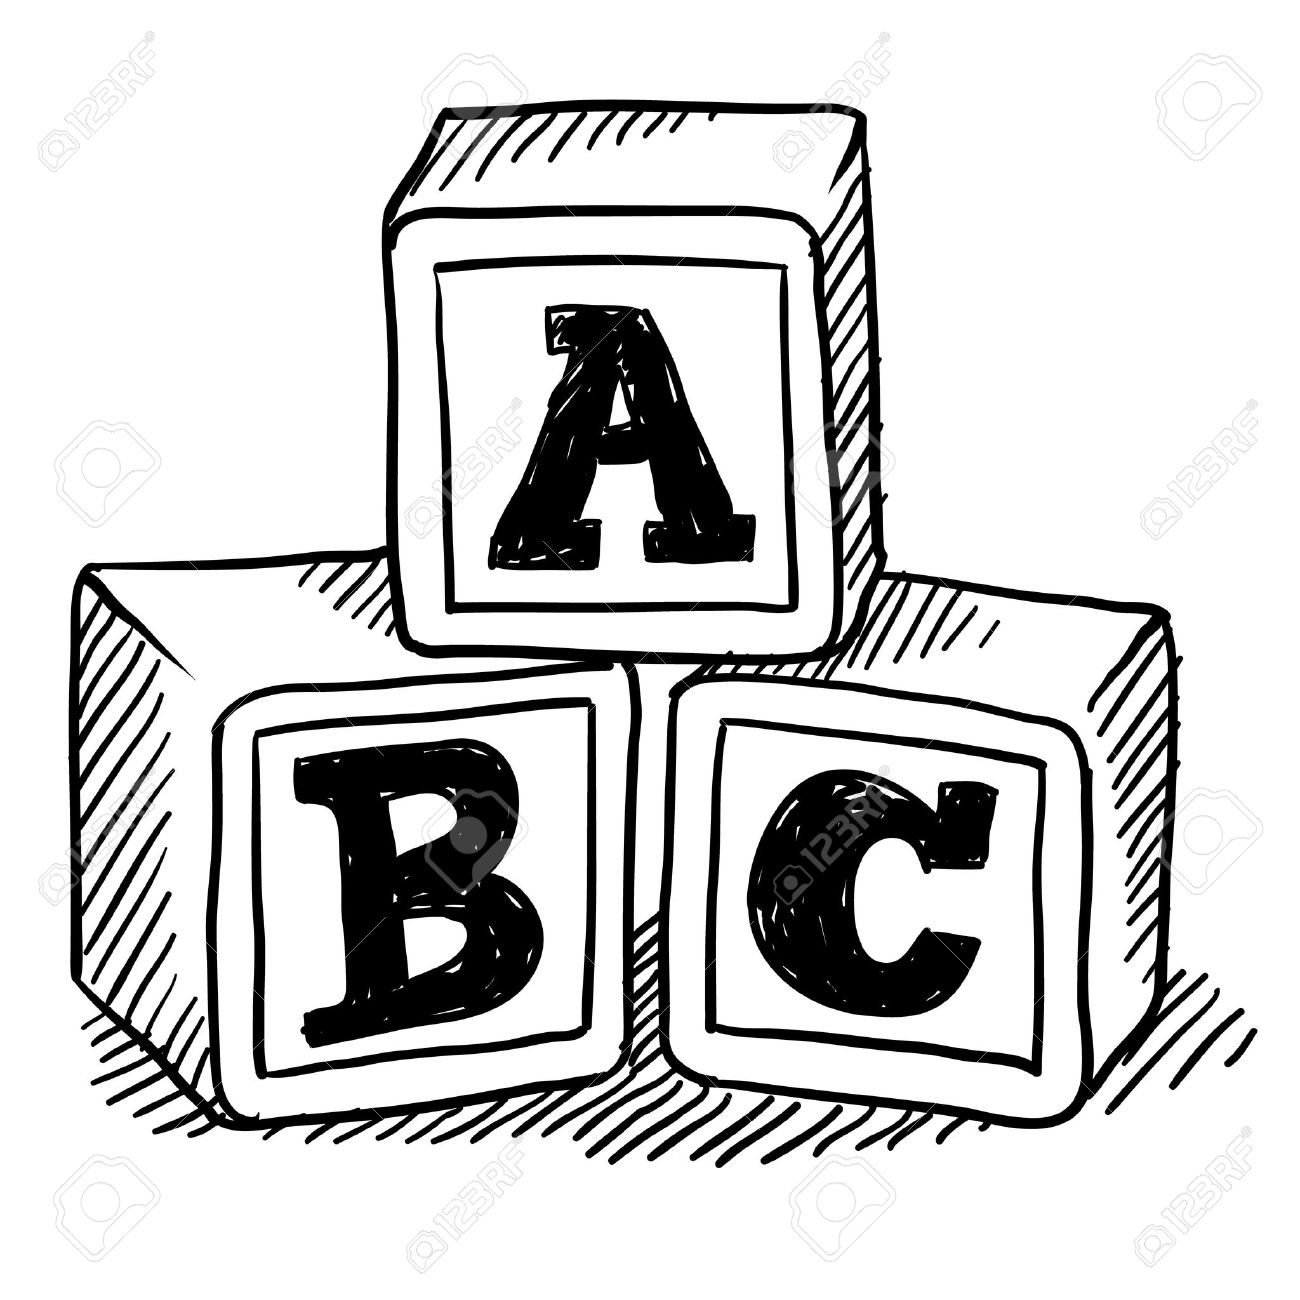 Abc blocks free clipart png freeuse download Abc Blocks Clipart & Abc Blocks Clip Art Images - ClipartALL.com png freeuse download